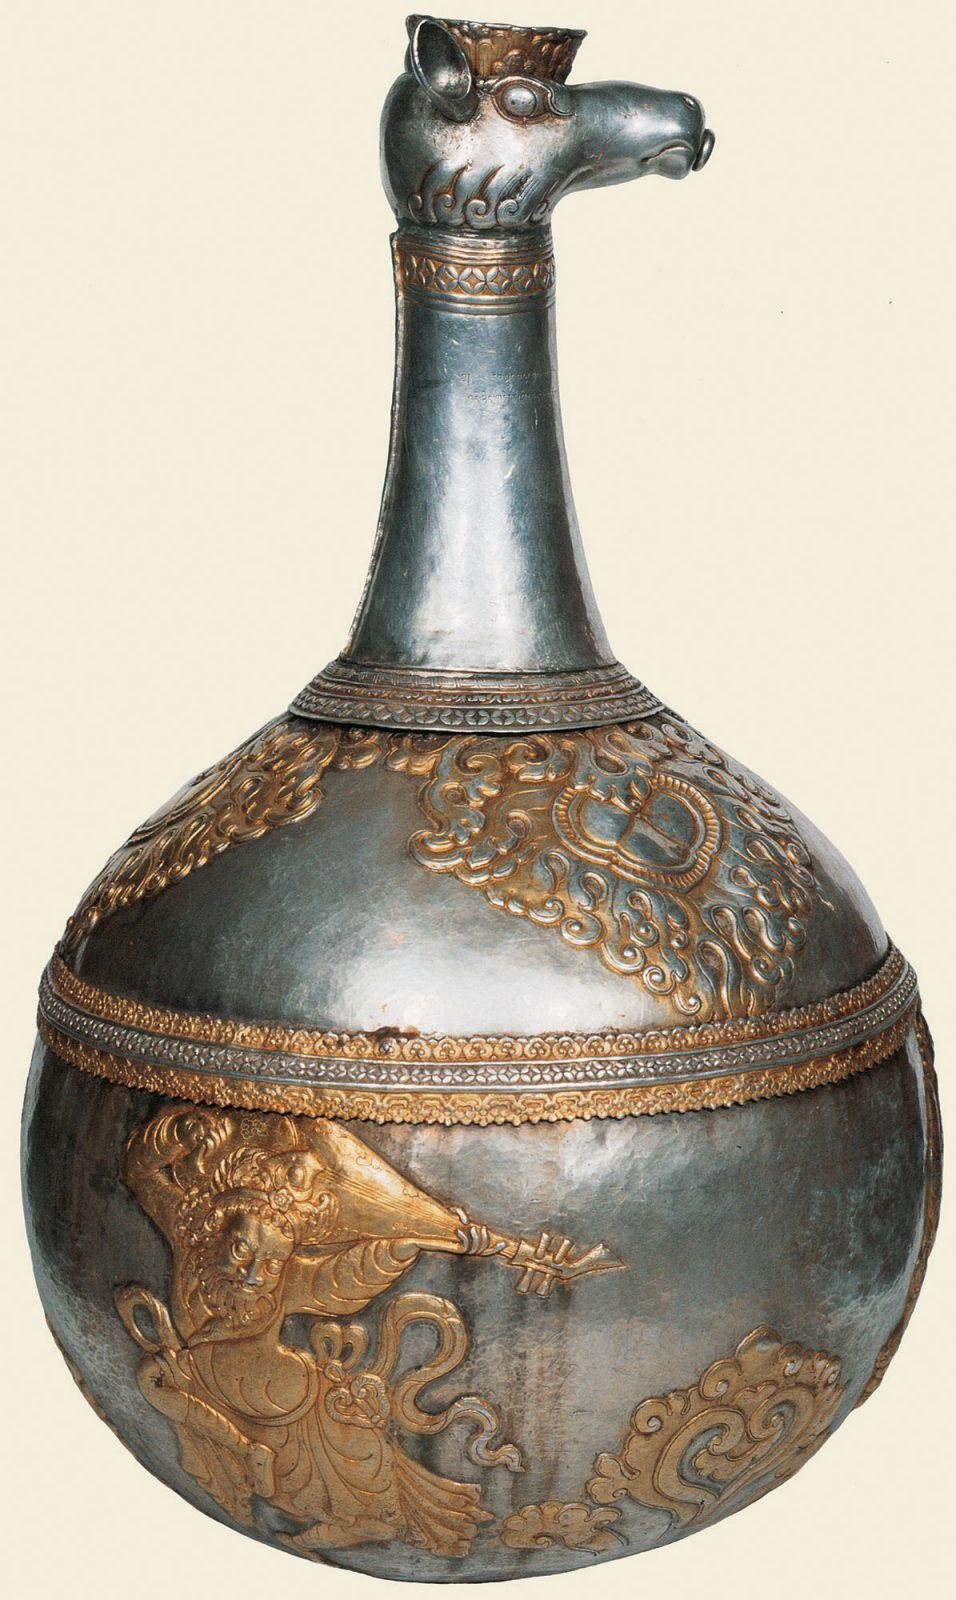 Jug with bulbous base and animal head spout